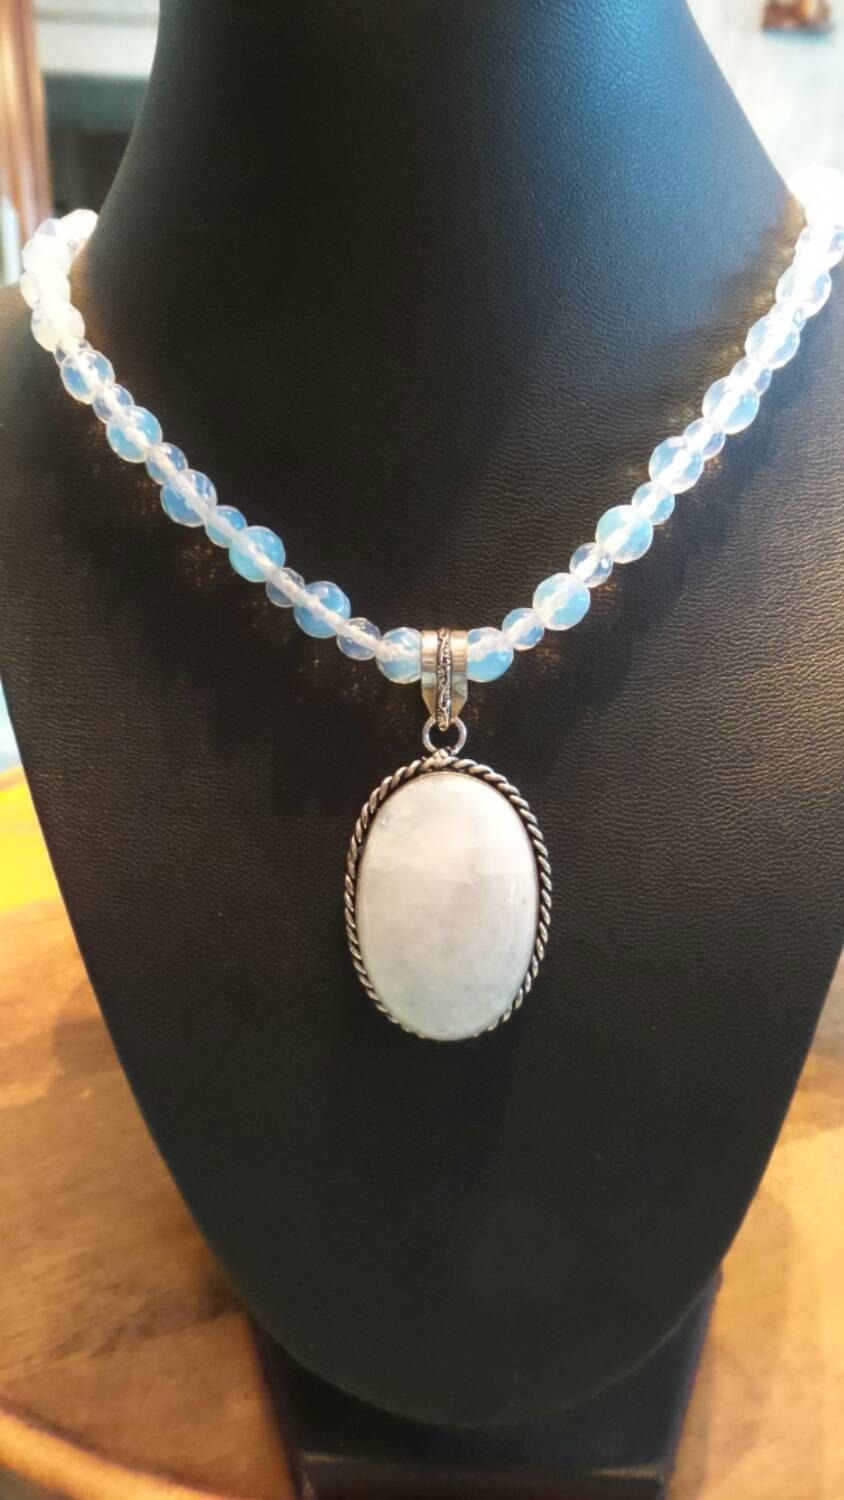 Moonstone beaded necklace with pendant. by FierStaarGems on Etsy